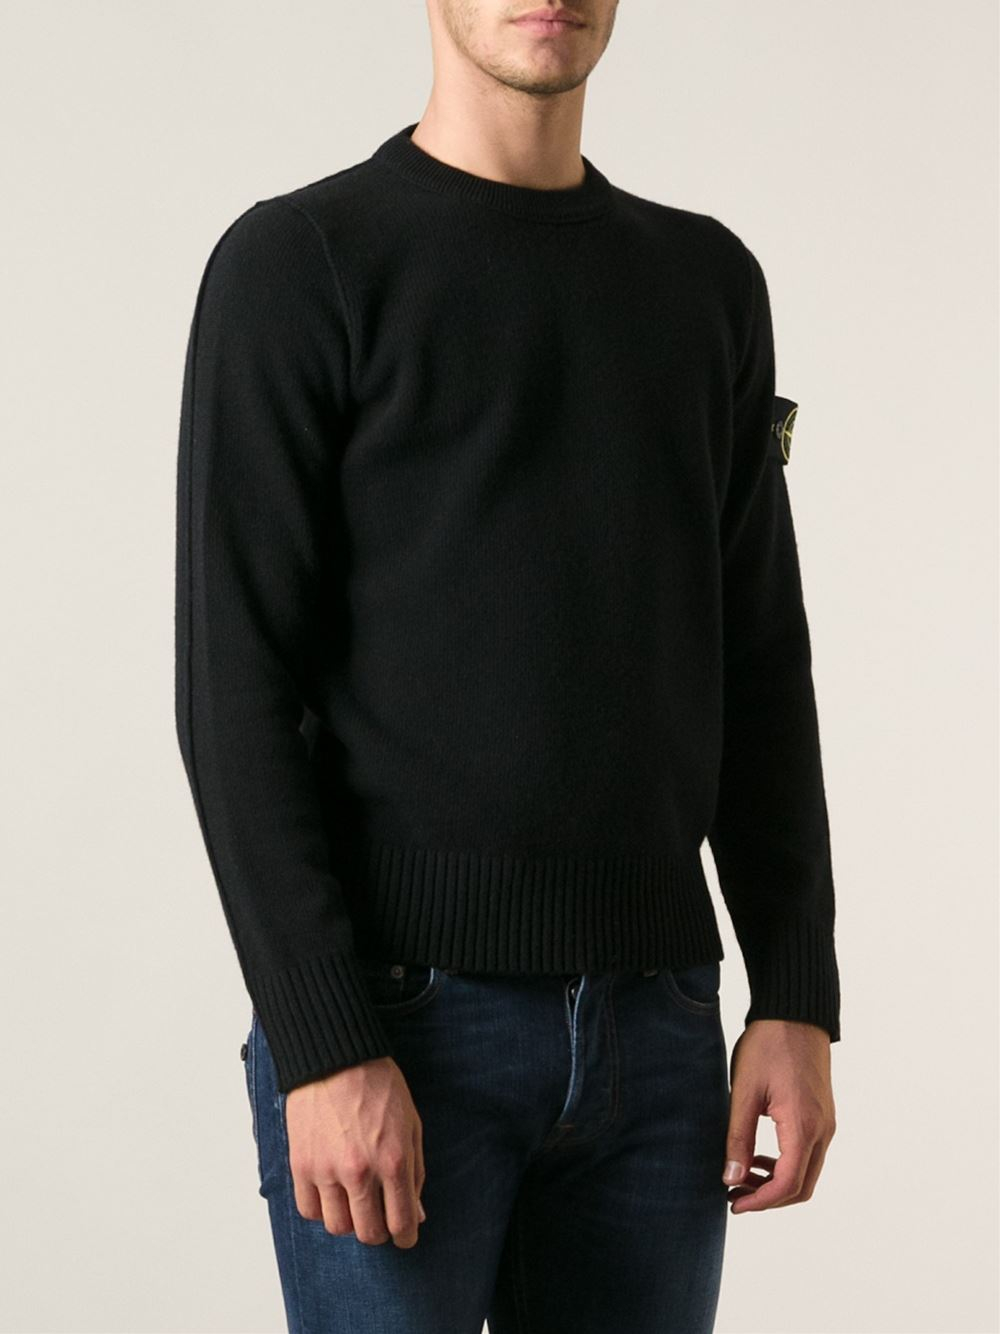 stone island black crew neck sweater. Black Bedroom Furniture Sets. Home Design Ideas